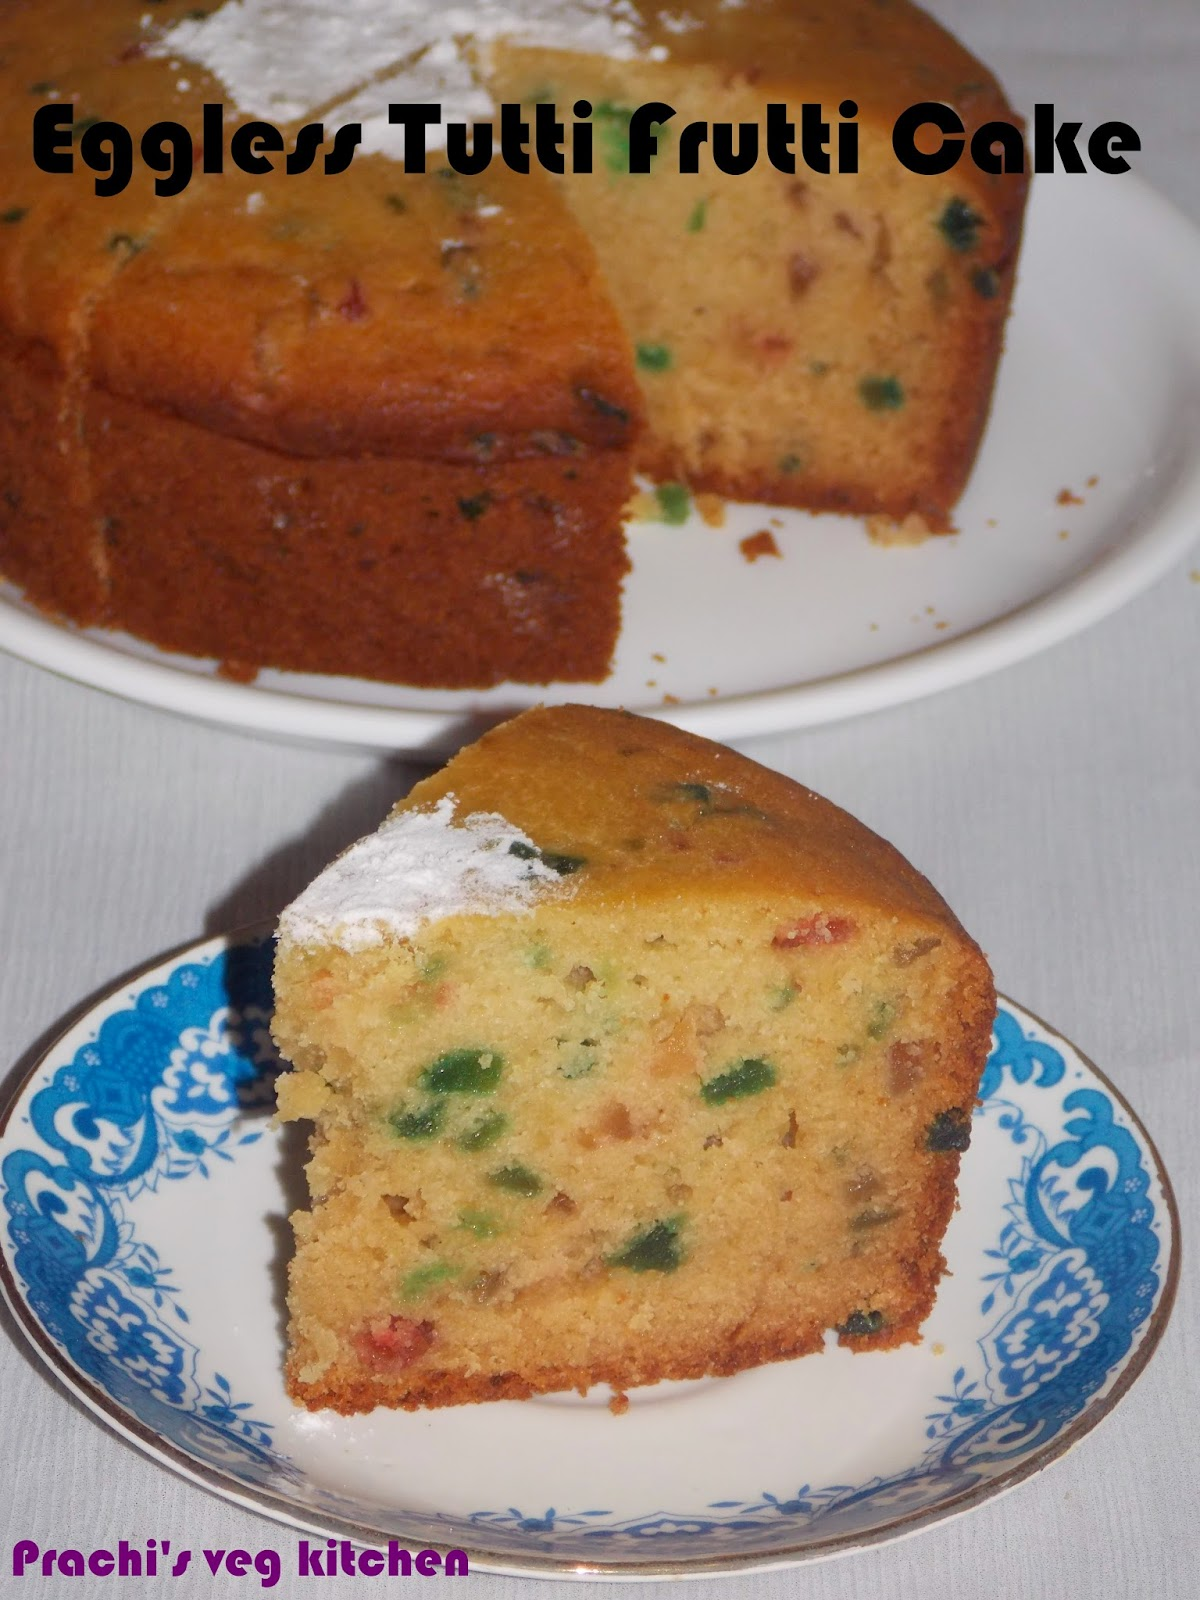 how to make eggless vanilla cake at home in oven